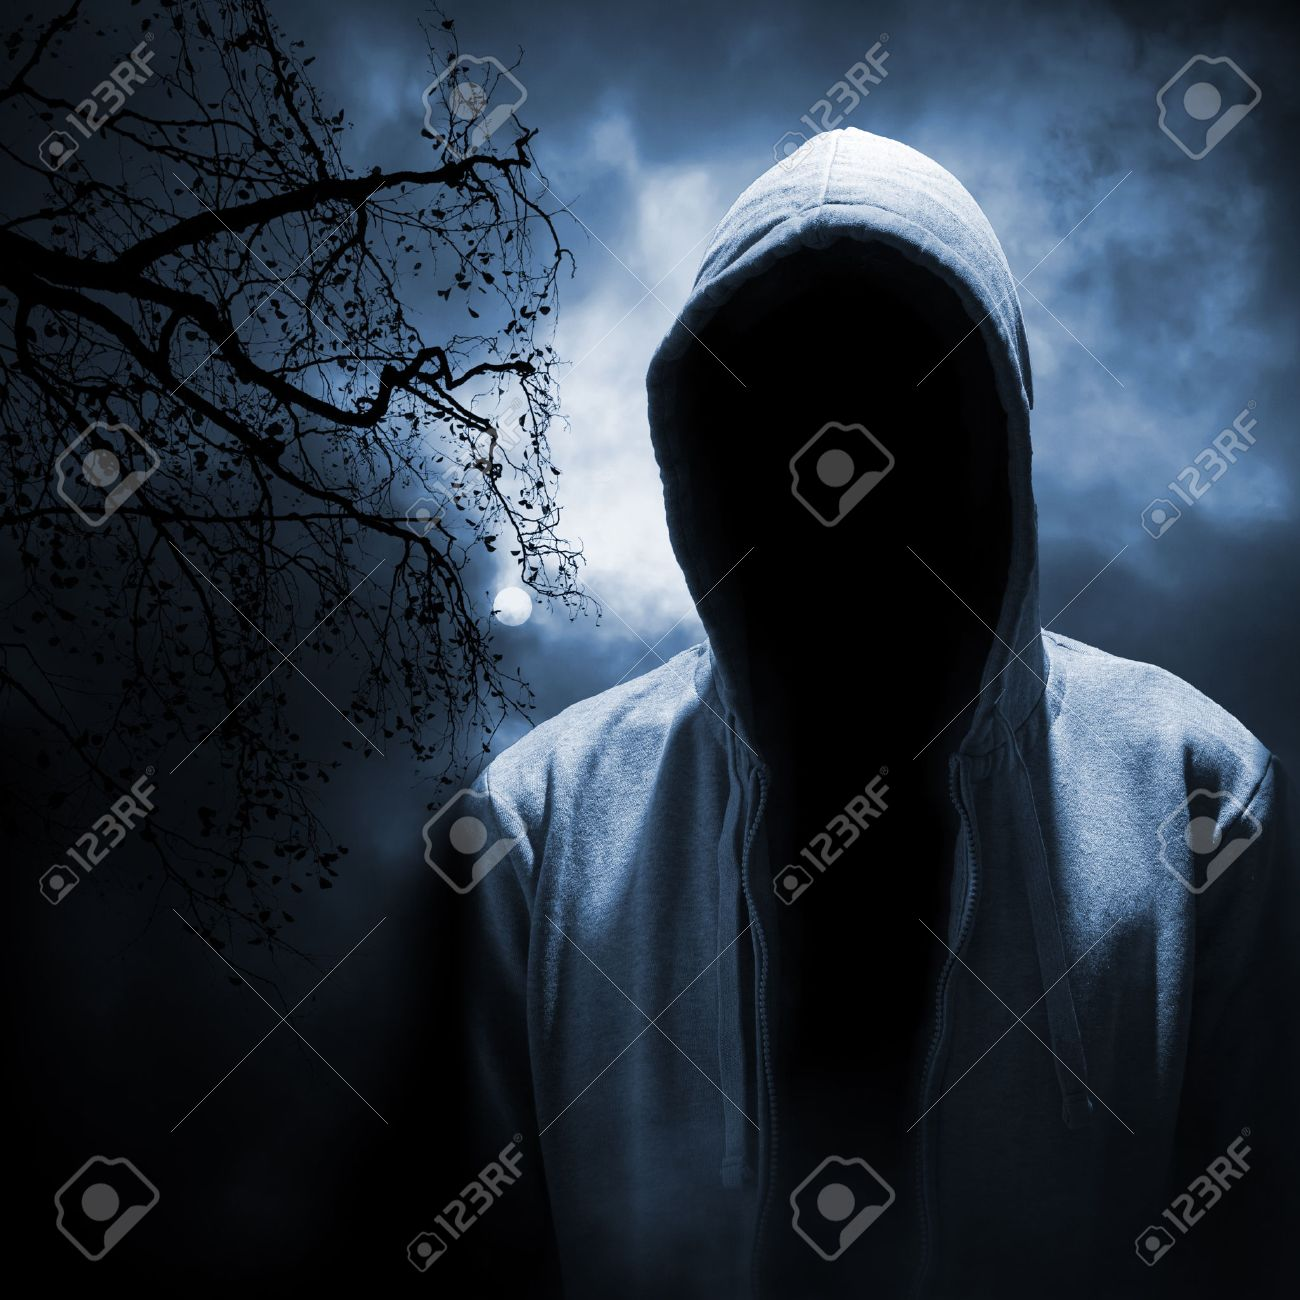 dangerous man hiding under the hood in the dark night forest stock